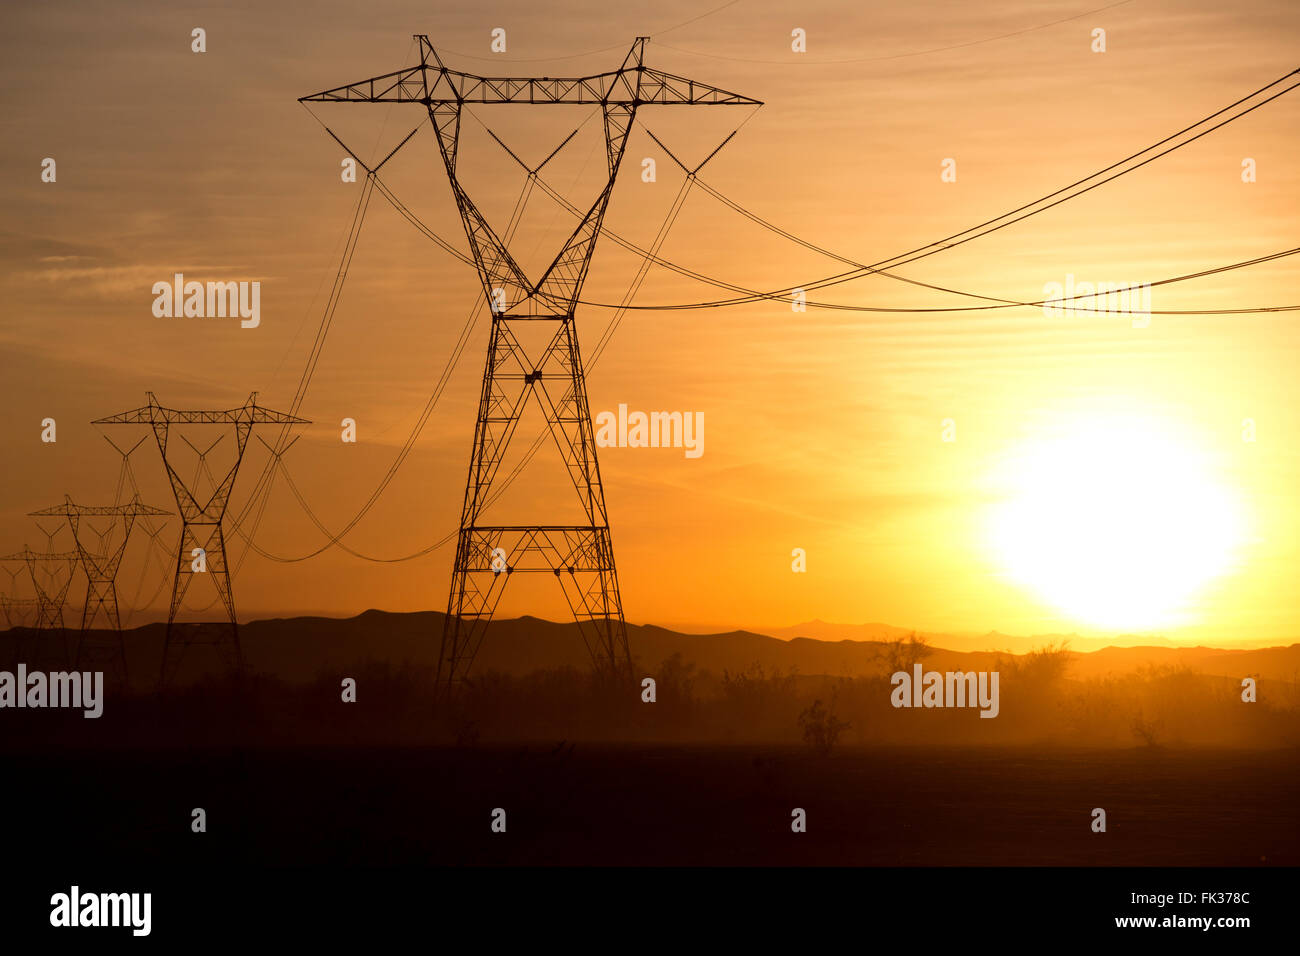 High tension power lines and the setting sun in the Sonoran Desert, California, USA - Stock Image